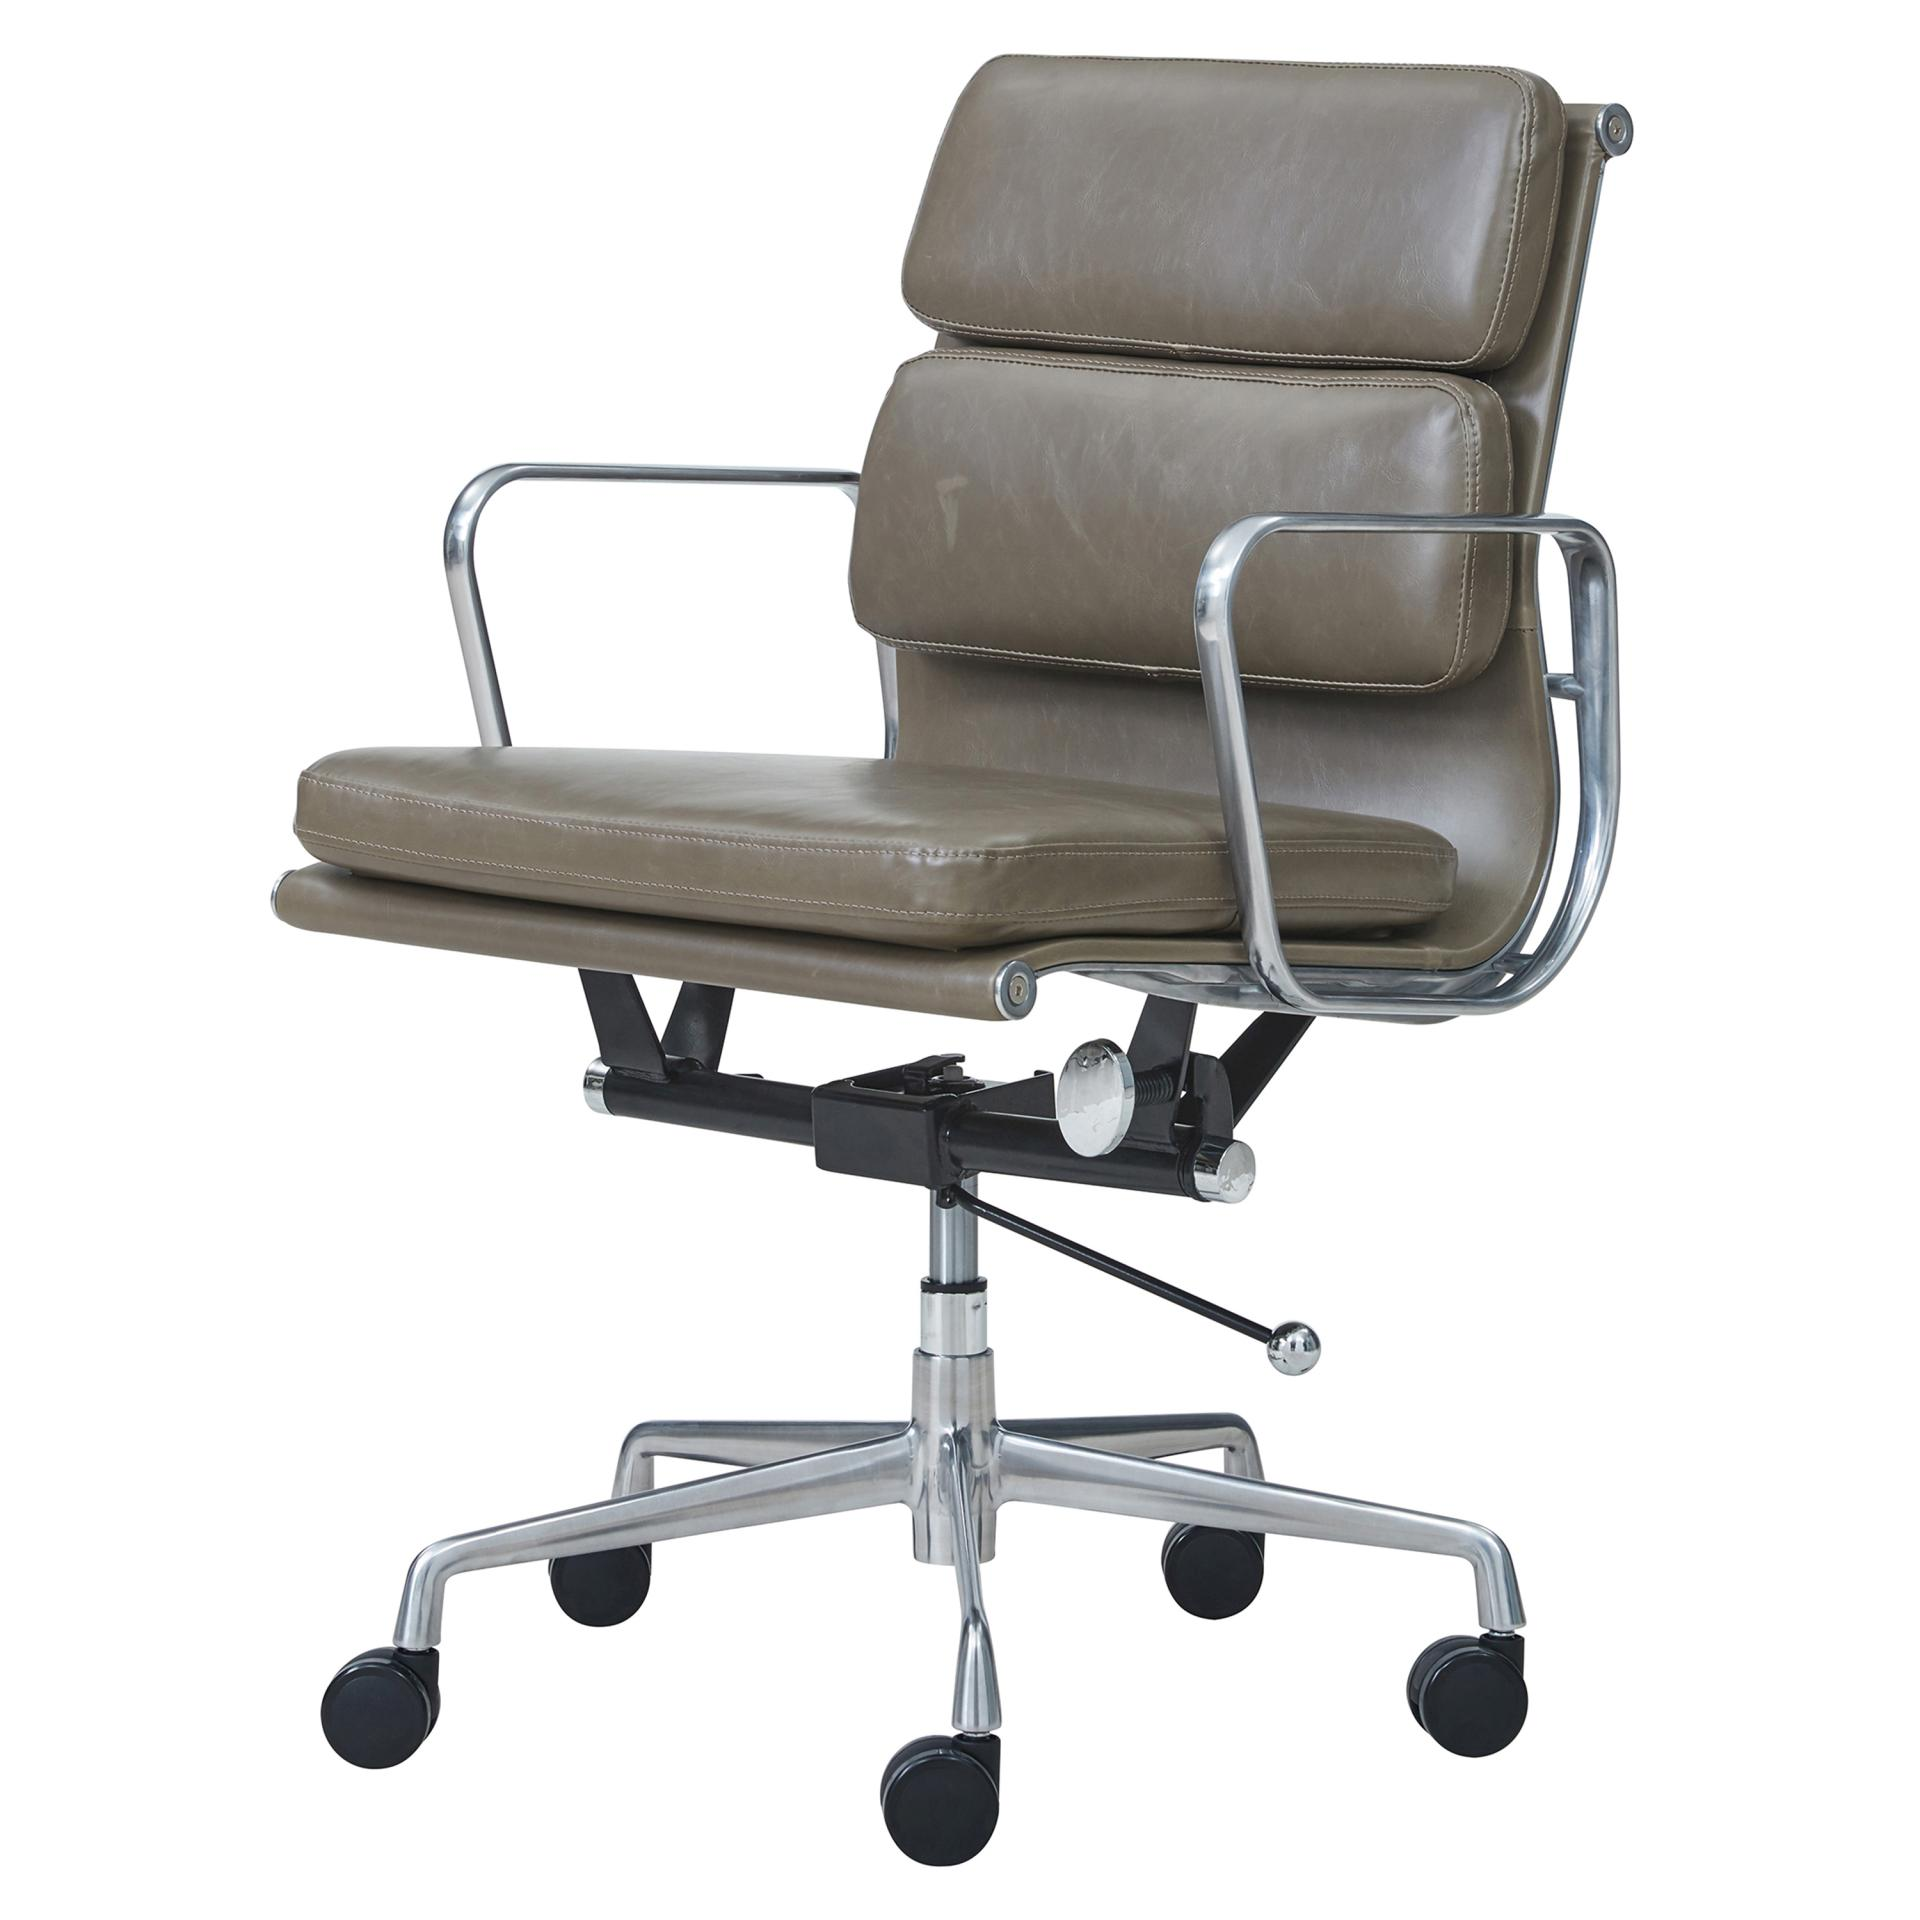 low back chairs for concerts sofa and chair company accessories 6900002 vs npd furniture stylish affordable